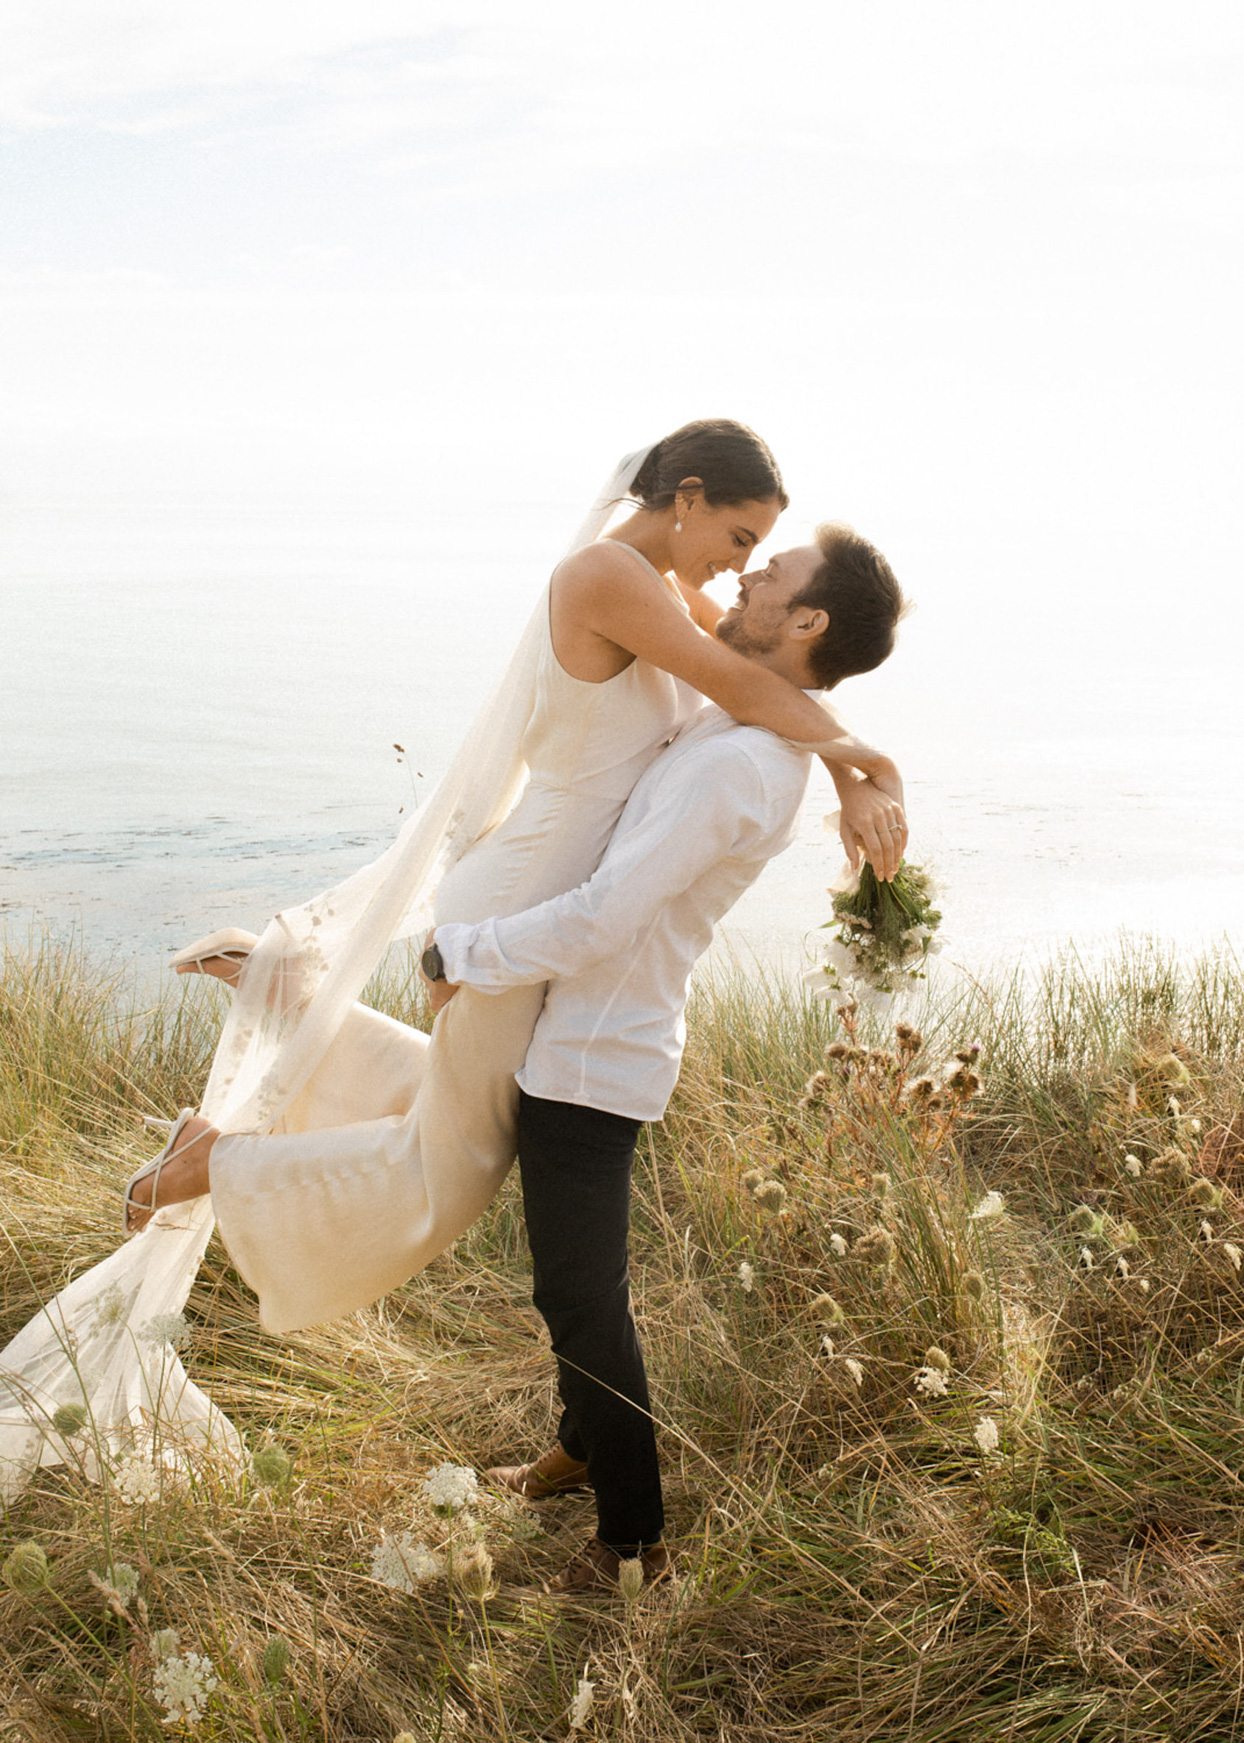 Bride and groom in grass near beach